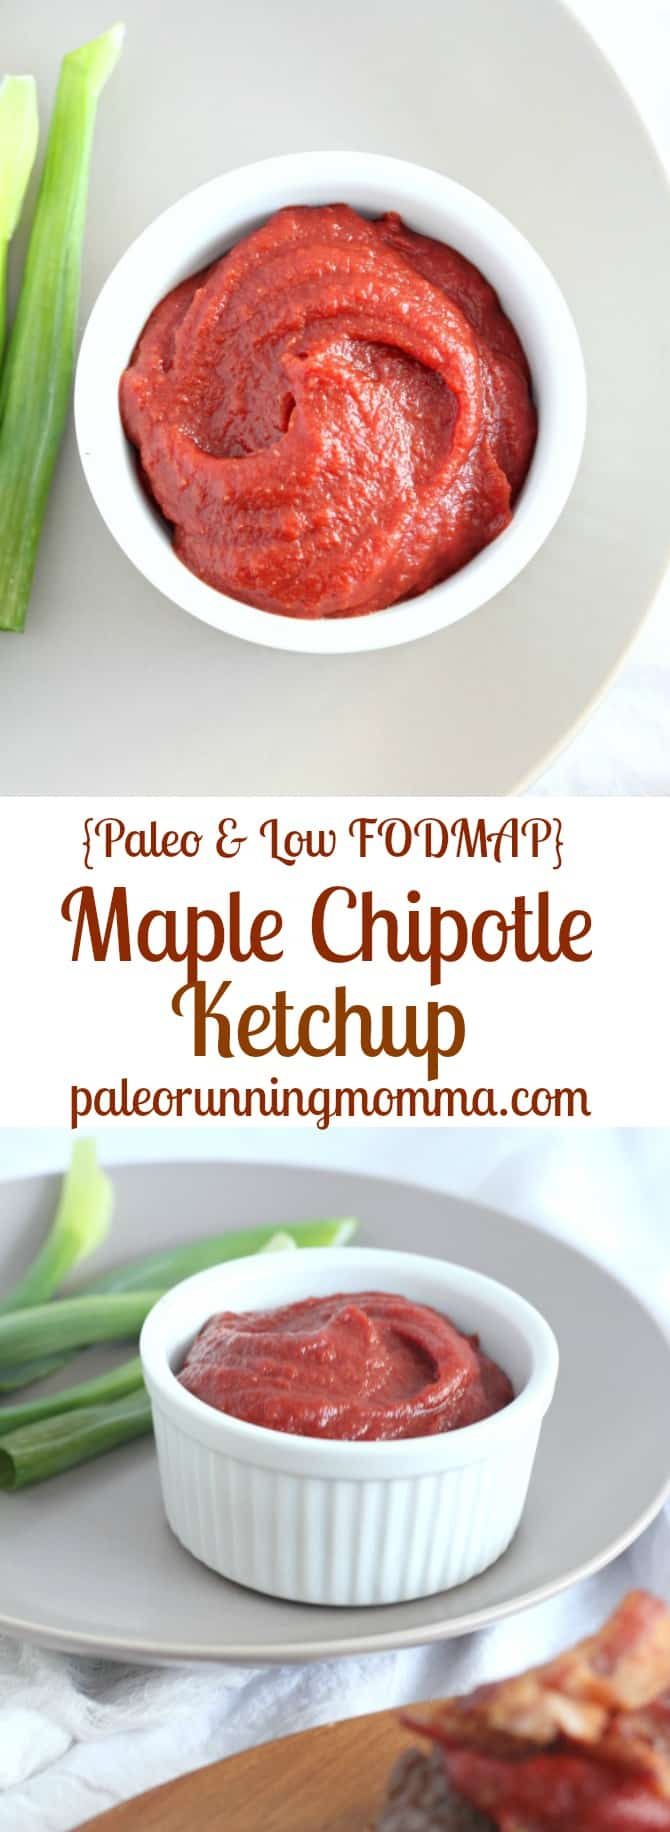 Maple Chipotle Ketchup - Paleo and Low FODMAP #glutenfree #paleo